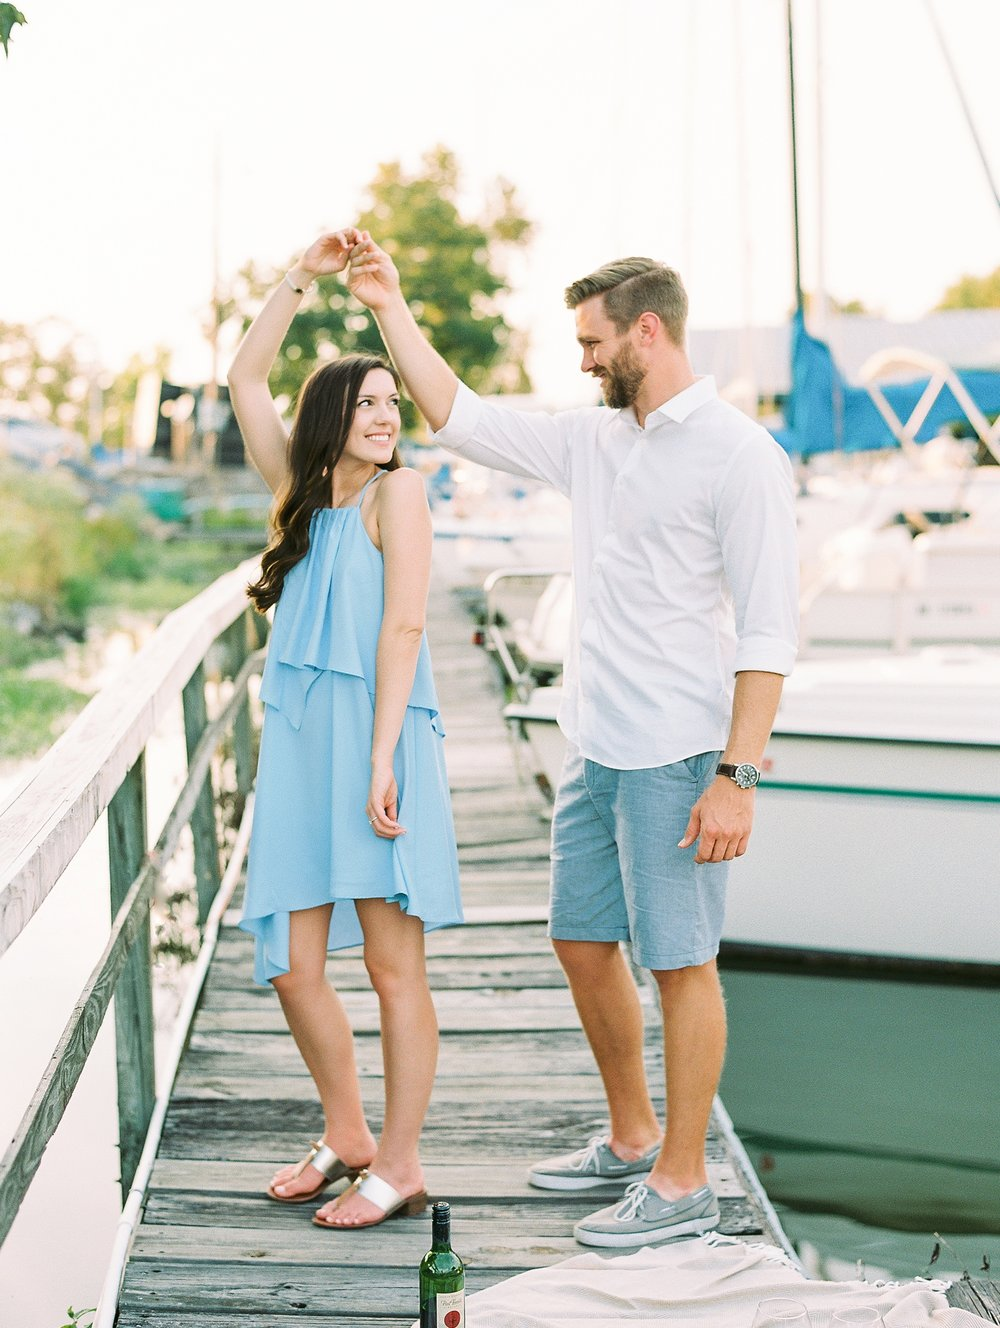 Nautical Boat Engagement Session Film Photographer_0563.jpg